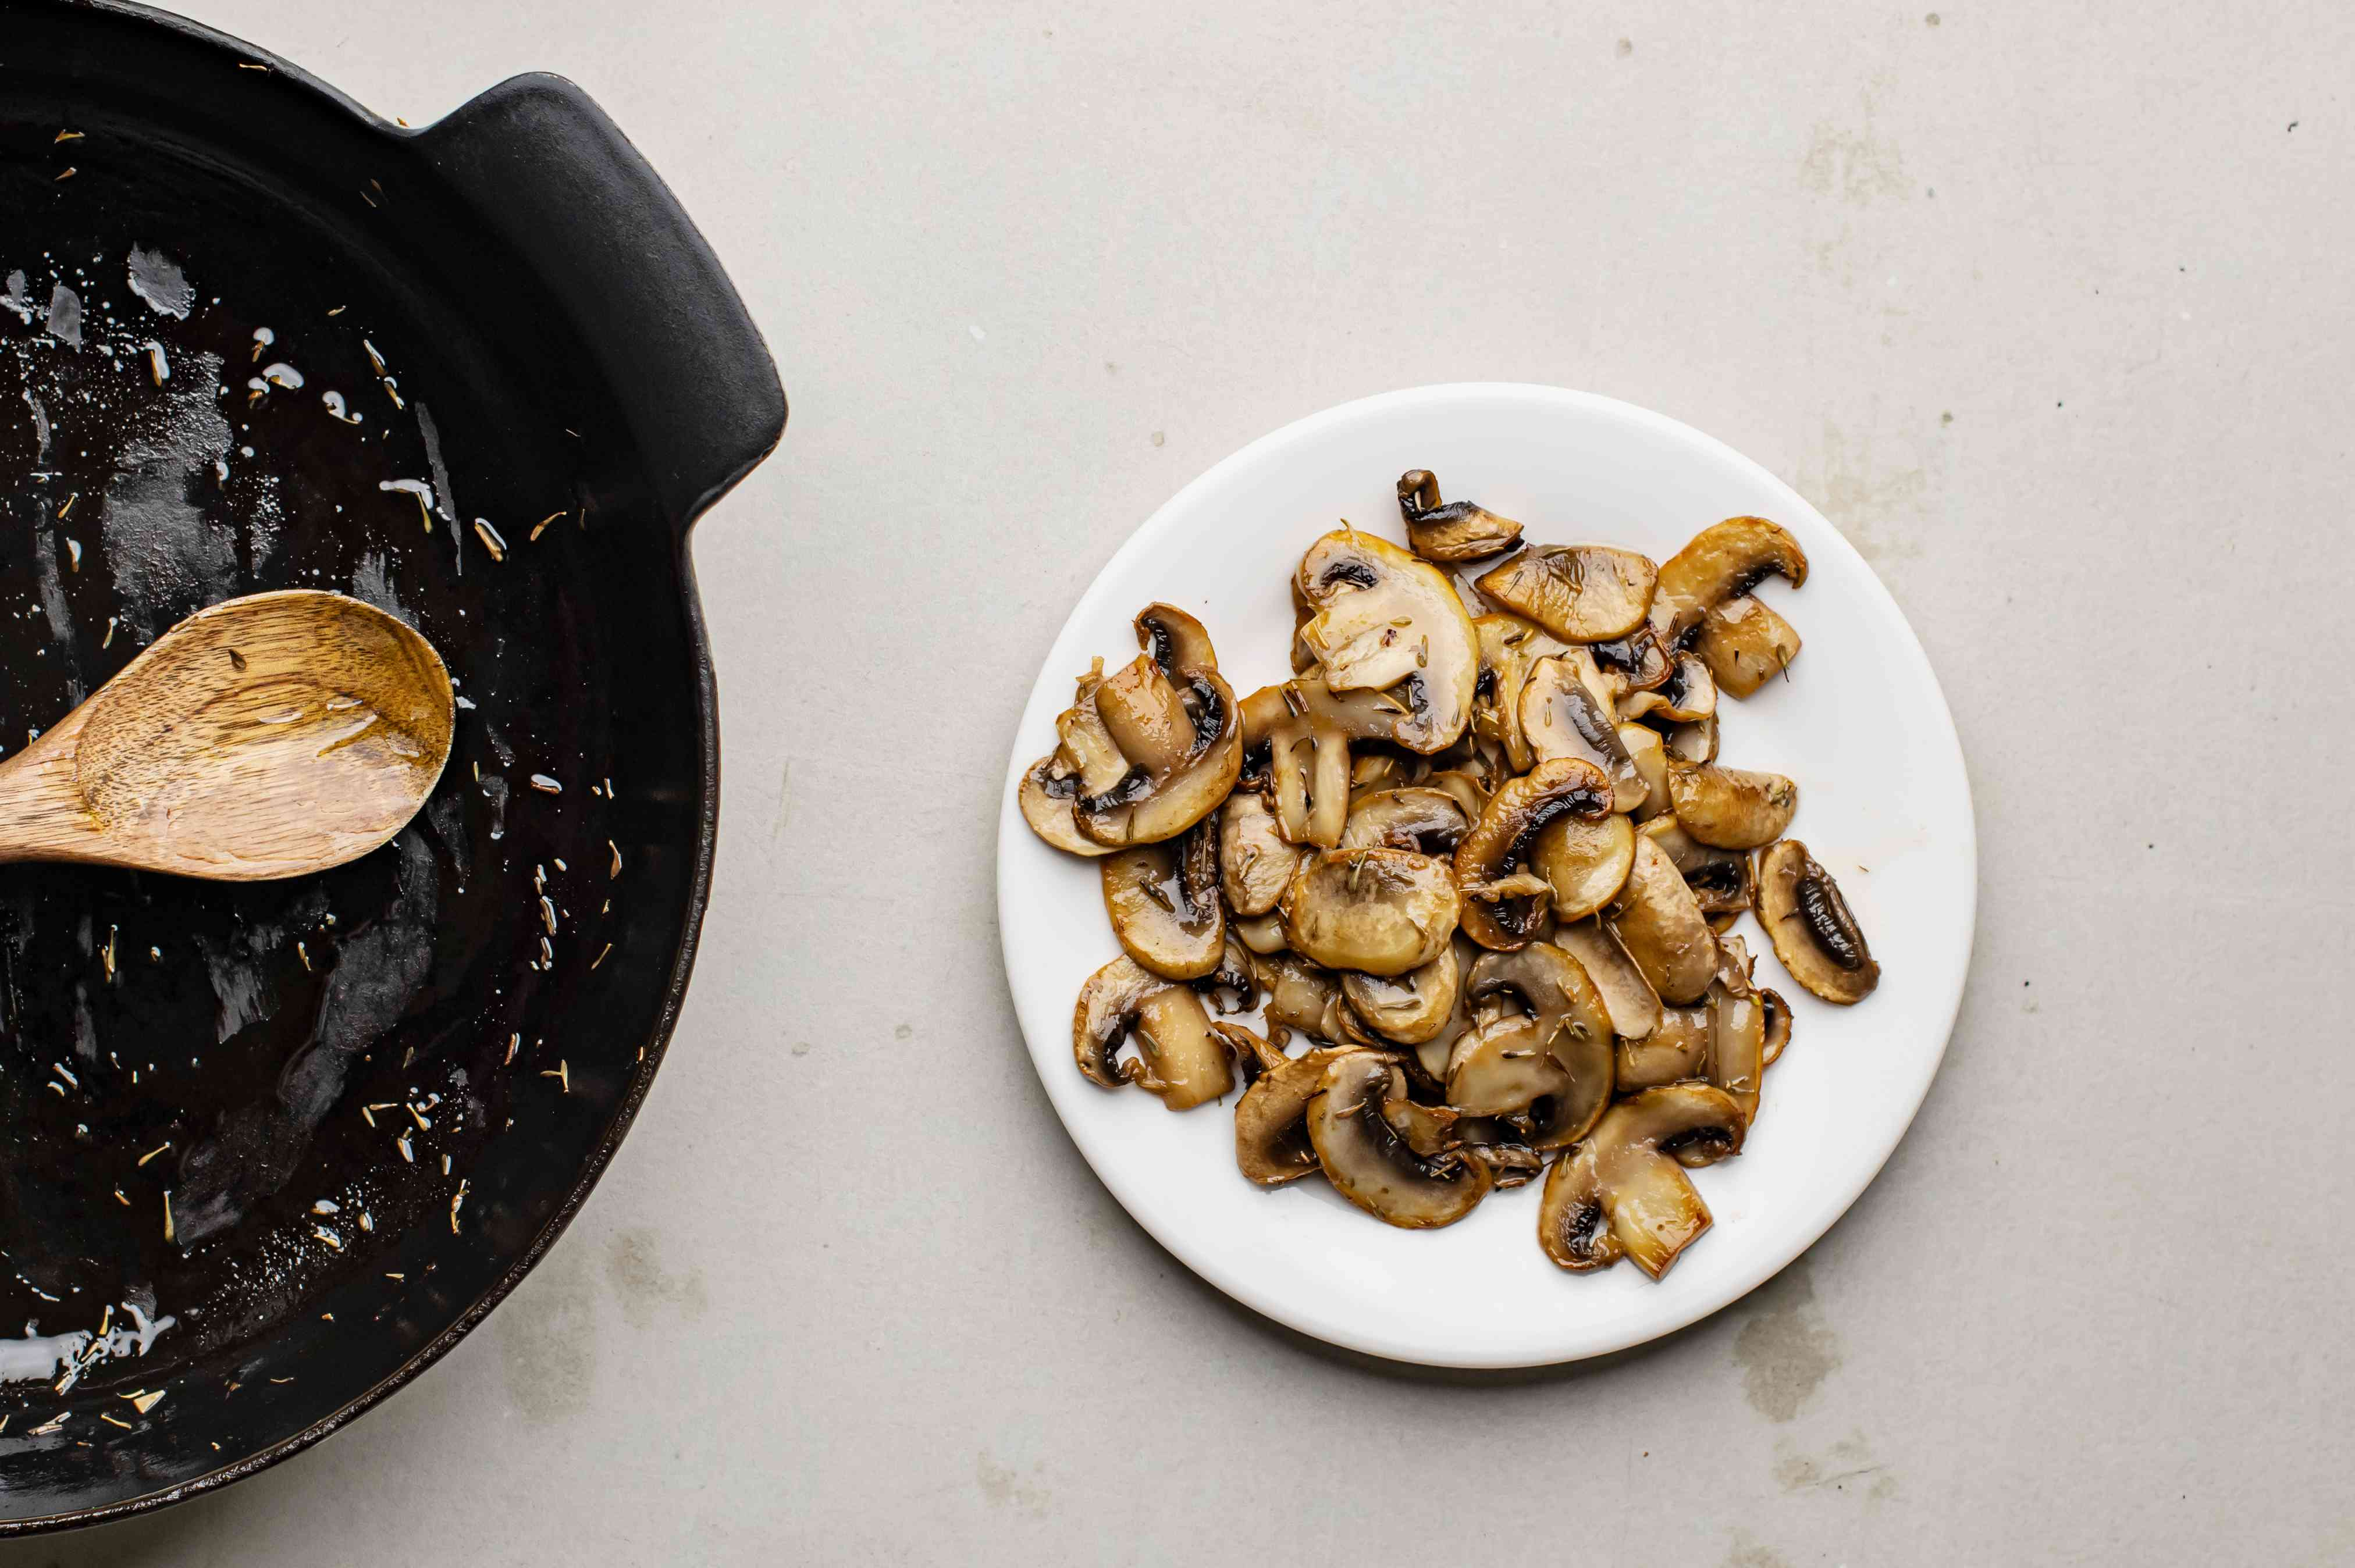 Cooked mushrooms on plate next to skillet